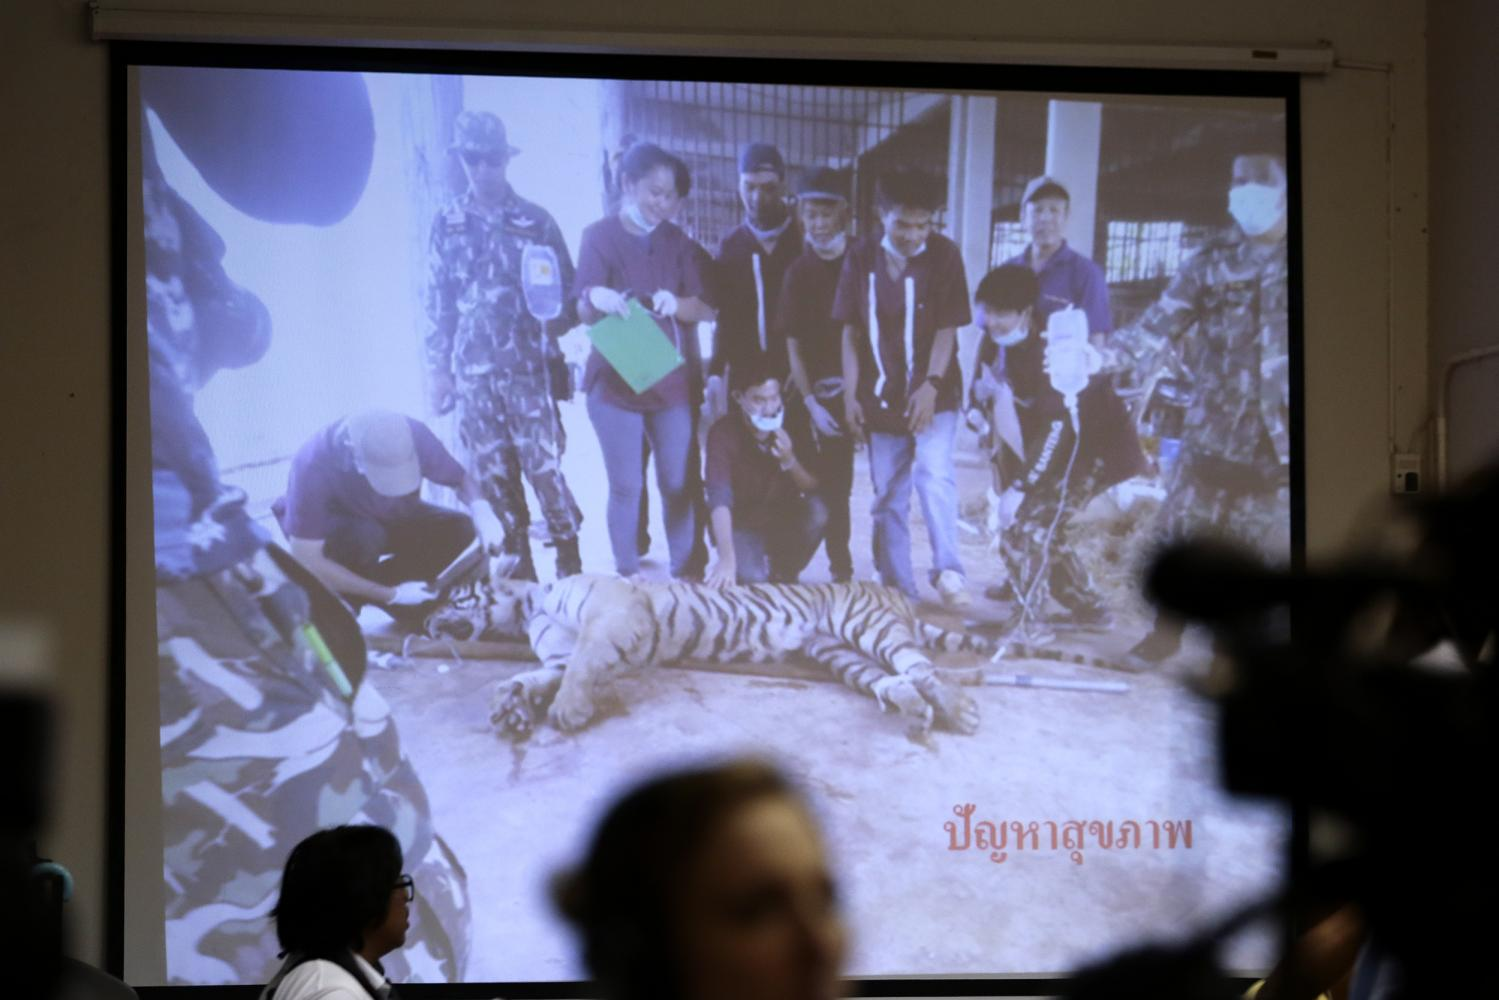 A picture of a sick tiger at Wat Phra Luang Ta Bua Yanasampanno in Kanchanaburi is shown at a press conference on Monday at the Department of National Parks, Wildlife and Plant Conservation. DNP revealed that 86 of 147 tigers confiscated from the temple three years ago died from prior diseases and inbreeding. Patipat Janthong